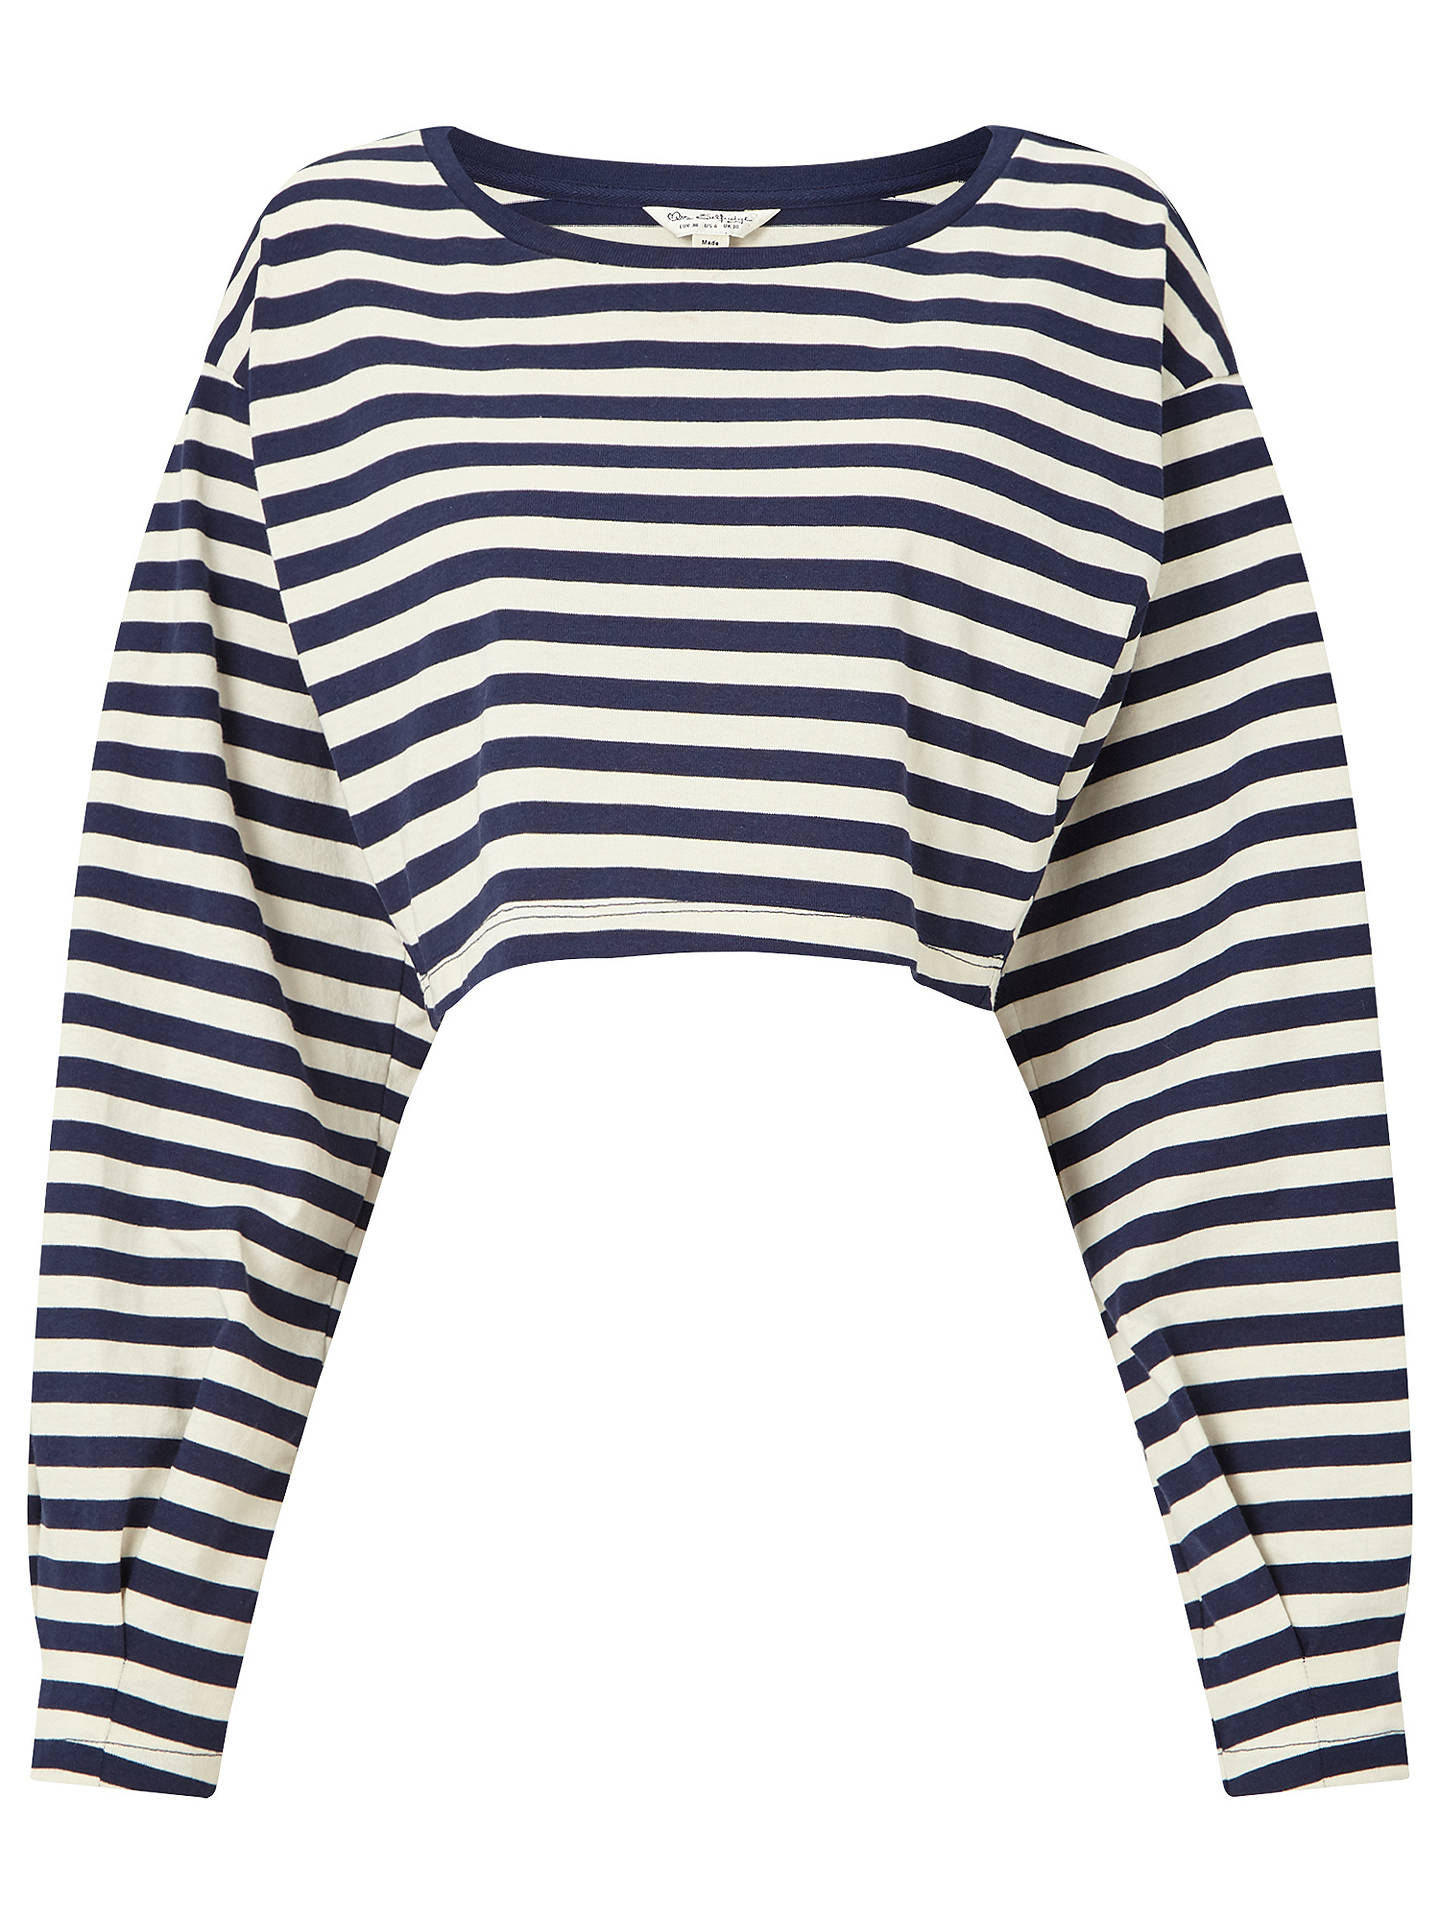 243a10a0e253b4 Buy Miss Selfridge Long Sleeve Striped Crop Top, Assorted, 6 Online at  johnlewis.